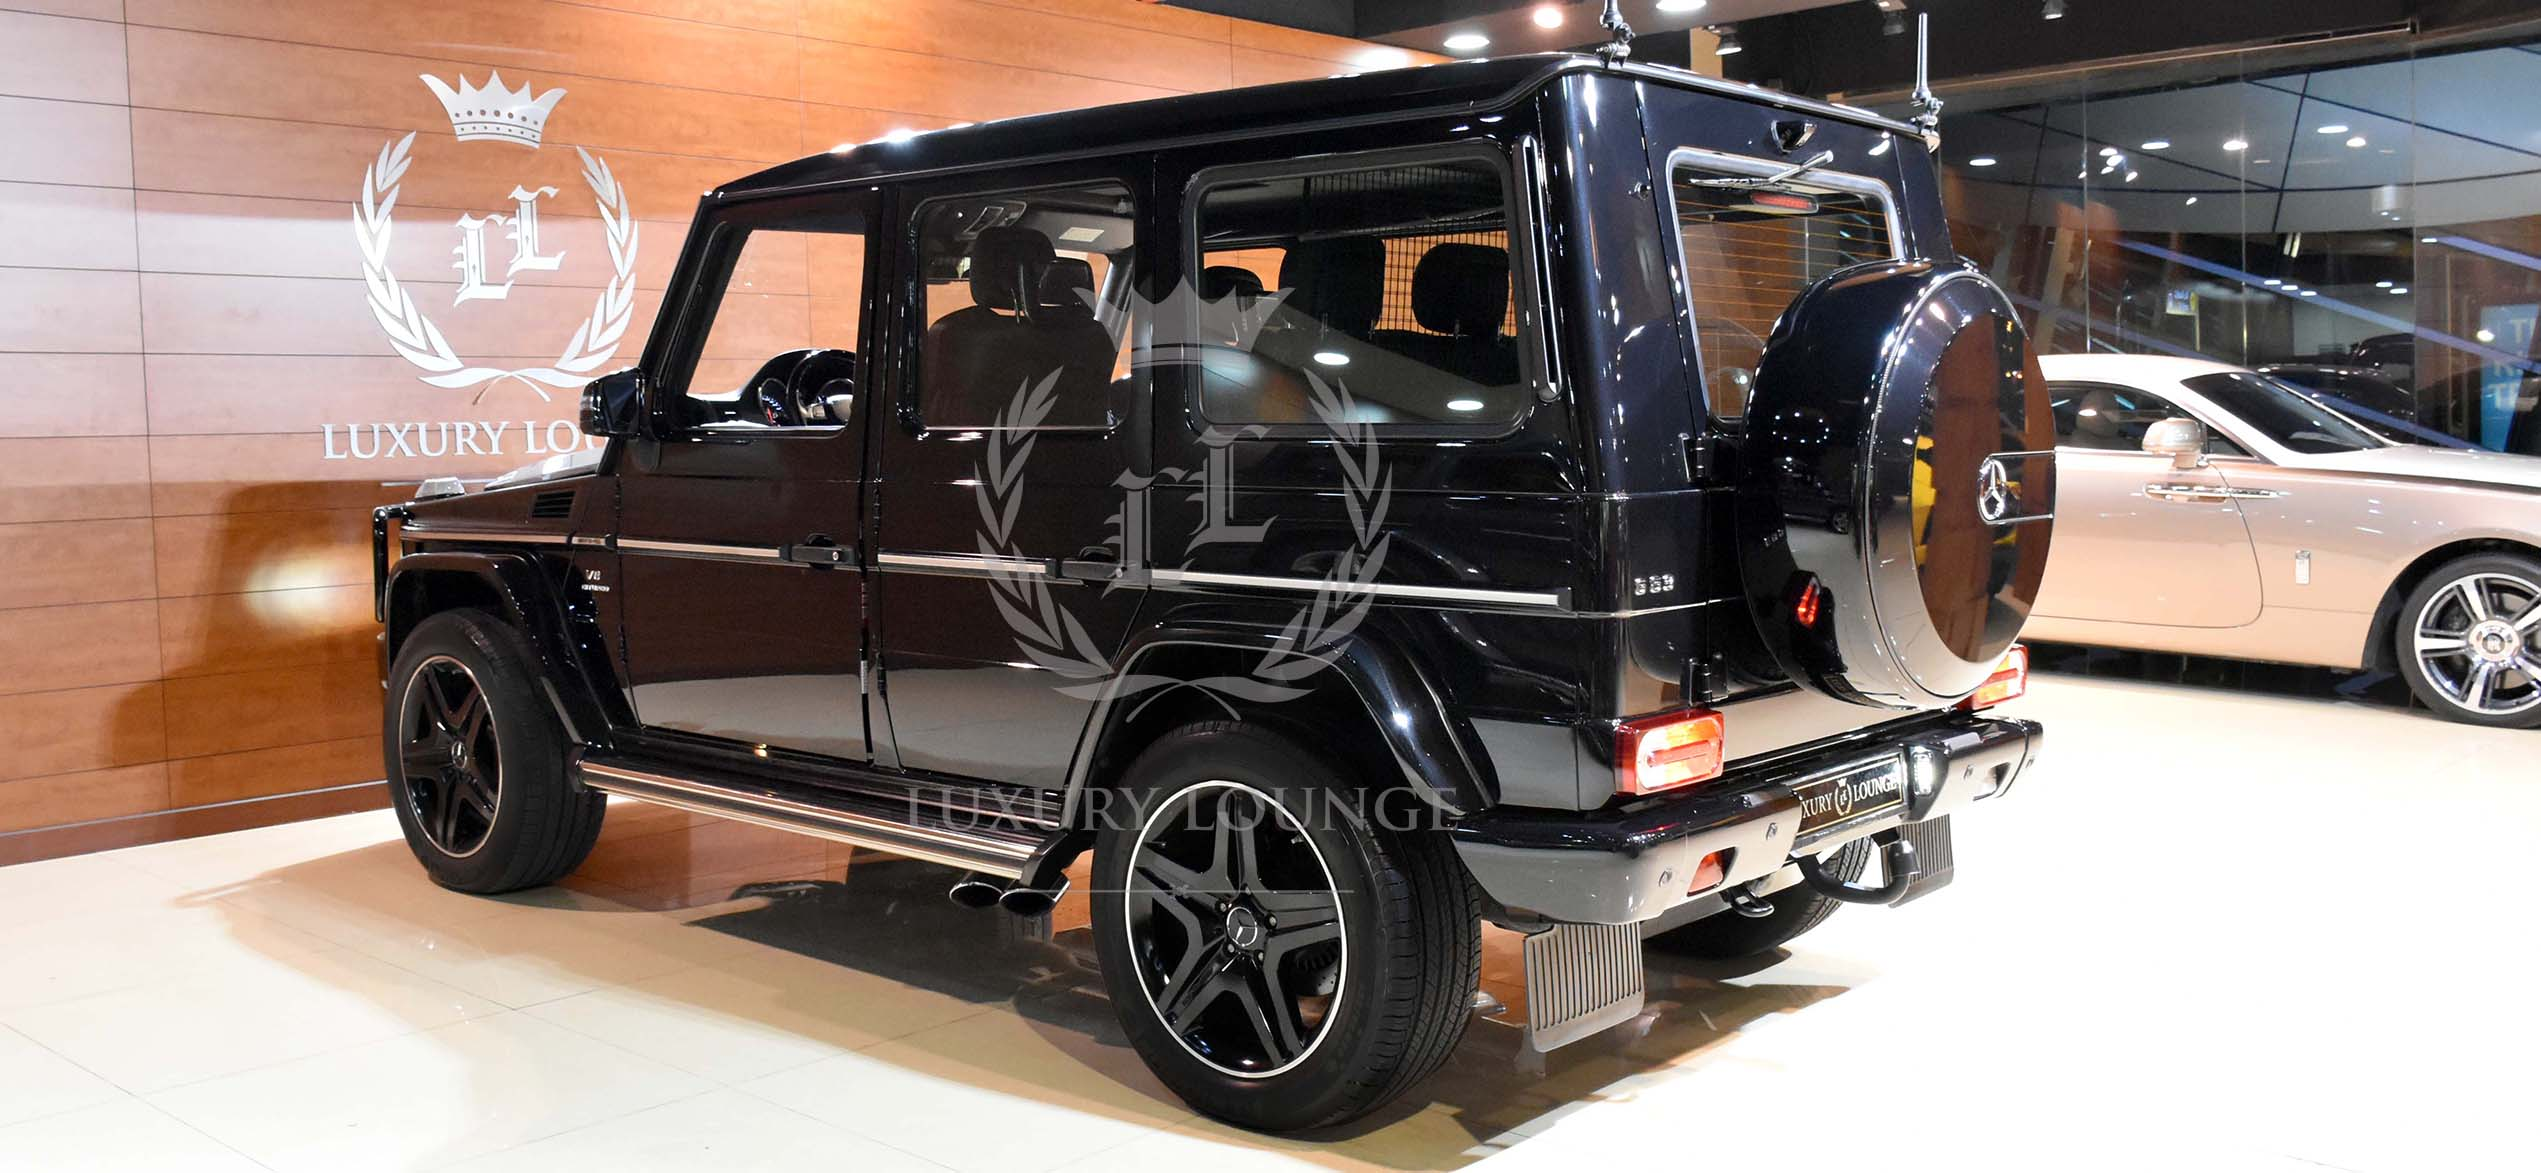 Good 2014 MERCEDES BENZ G 63 AMG,GCC SPECS,FULL SERVICE HISTORY Show Phone Number